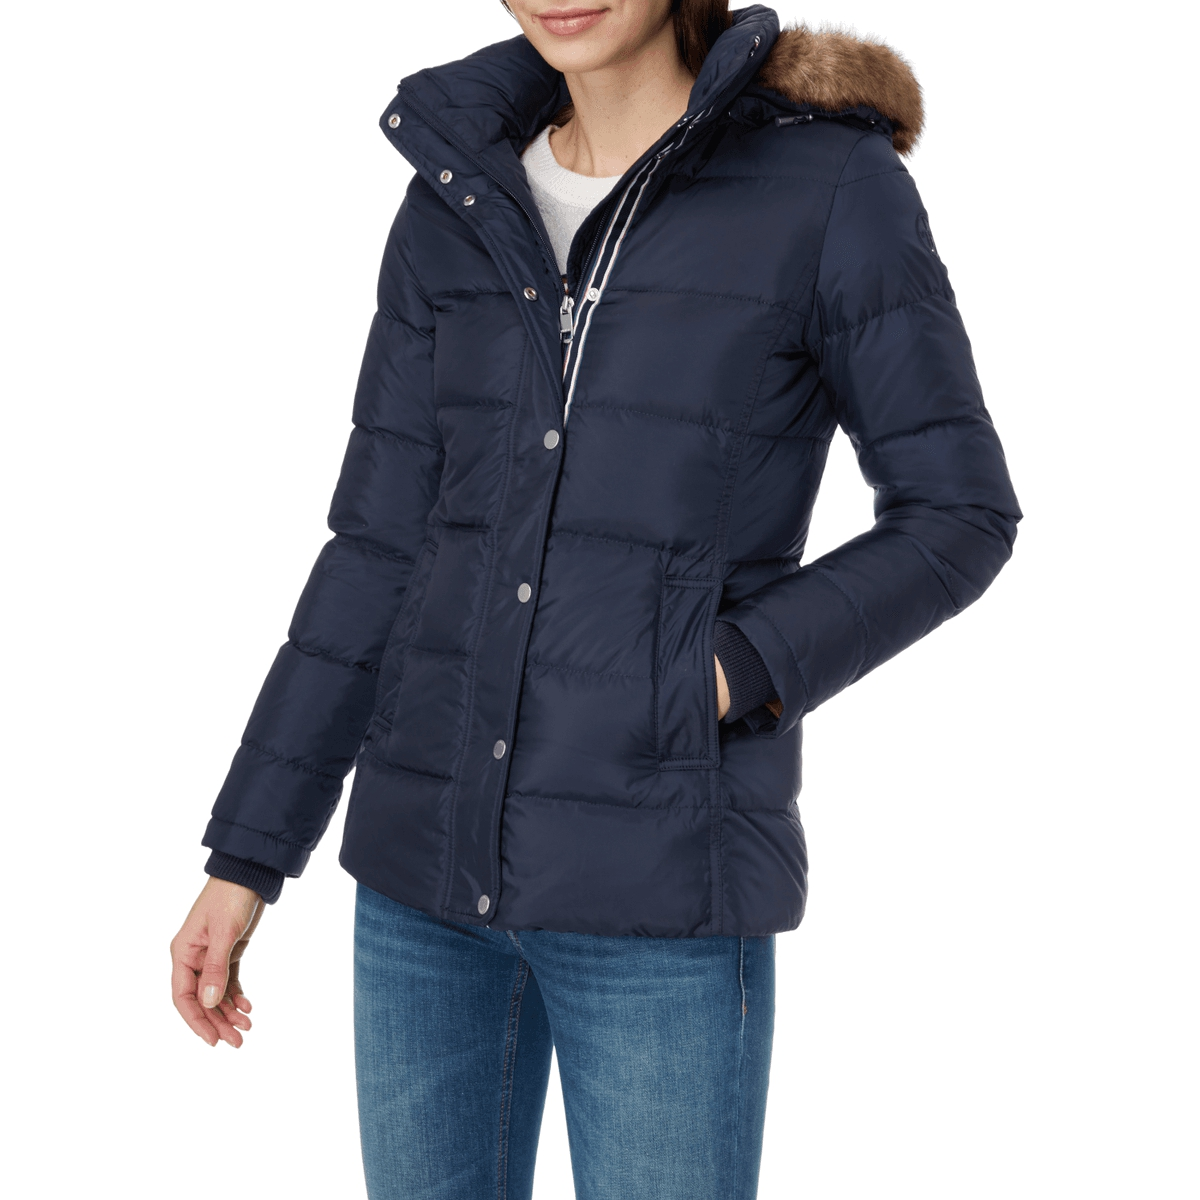 tommy hilfiger daunen jacke mit steppungen damen jacke neu. Black Bedroom Furniture Sets. Home Design Ideas